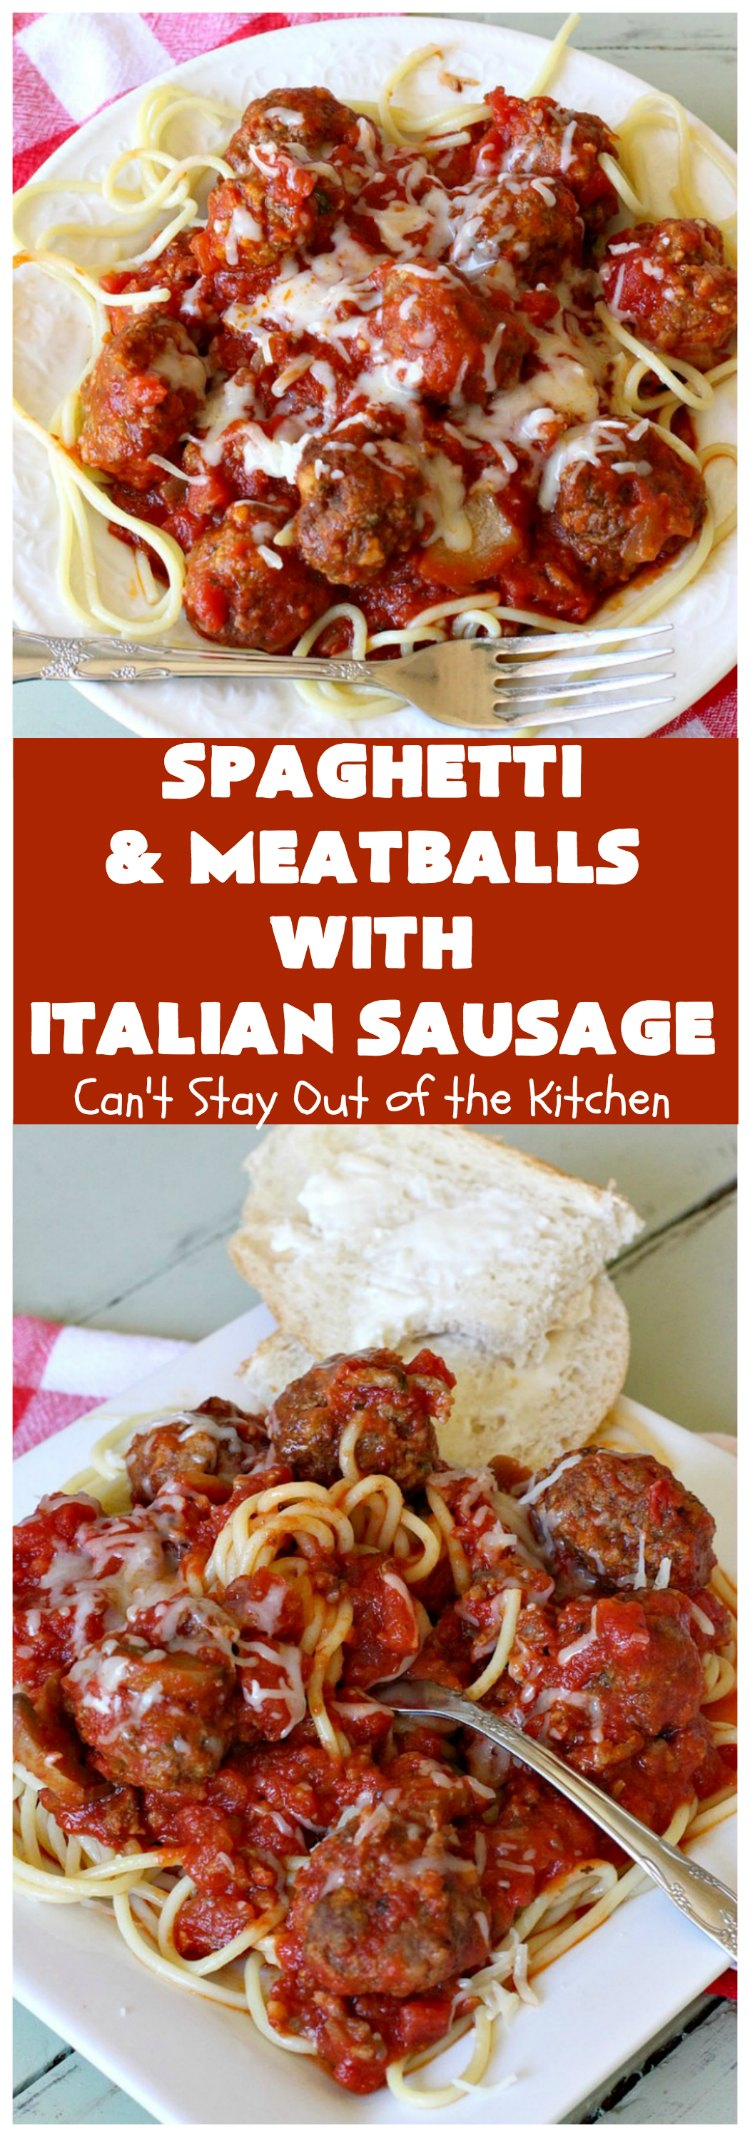 Spaghetti and Meatballs with Italian Sausage | Can't Stay Out of the Kitchen